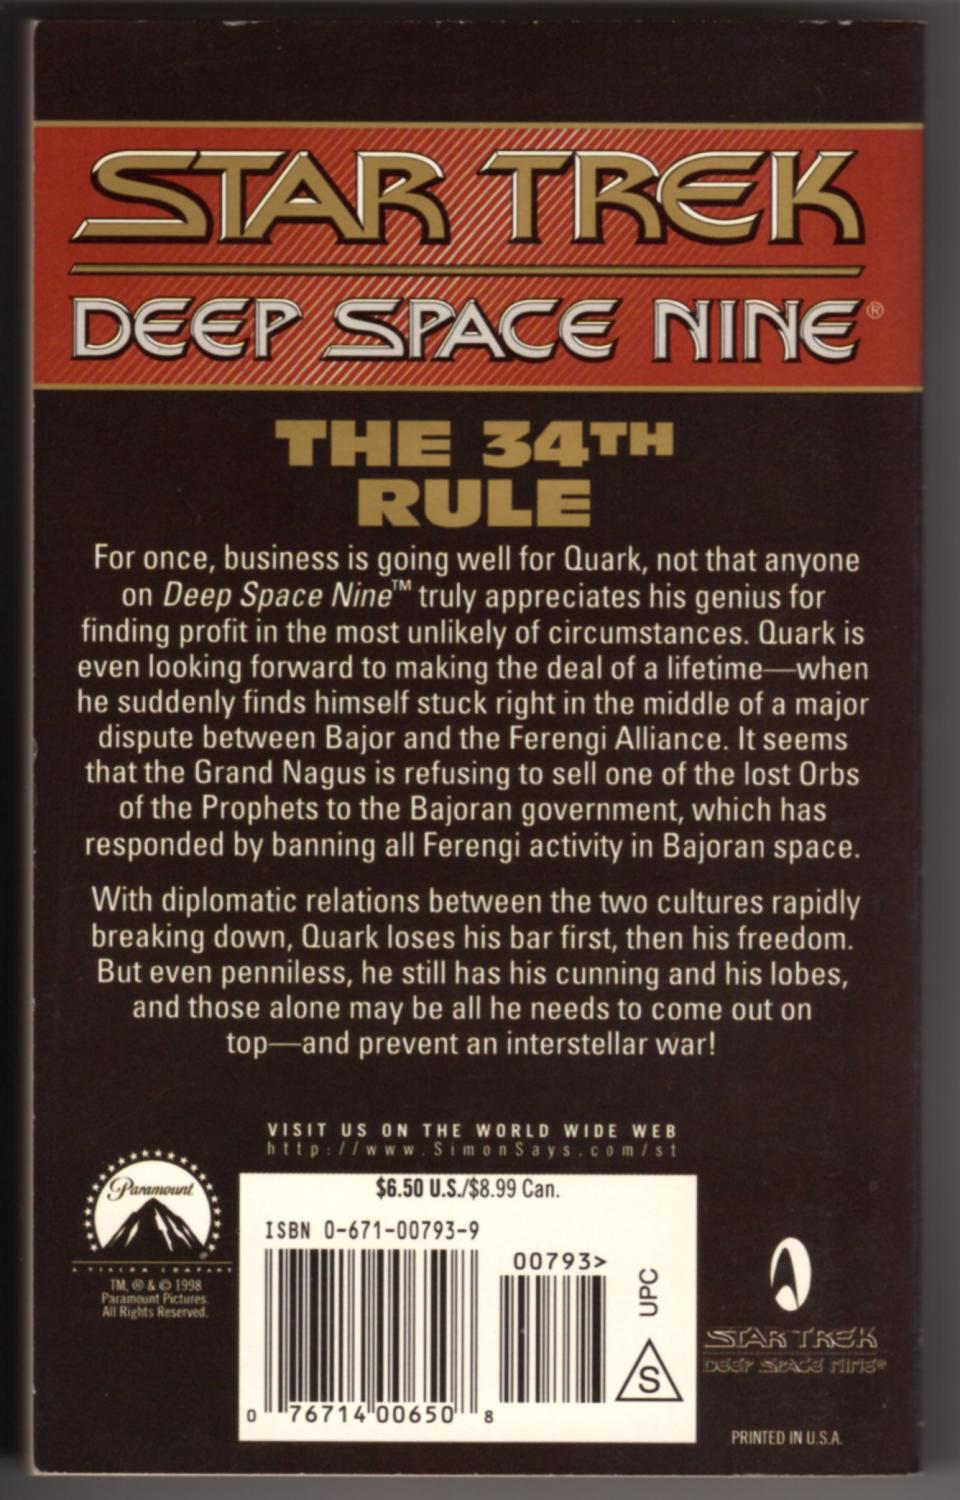 Ds9 #23 The 34th Rule